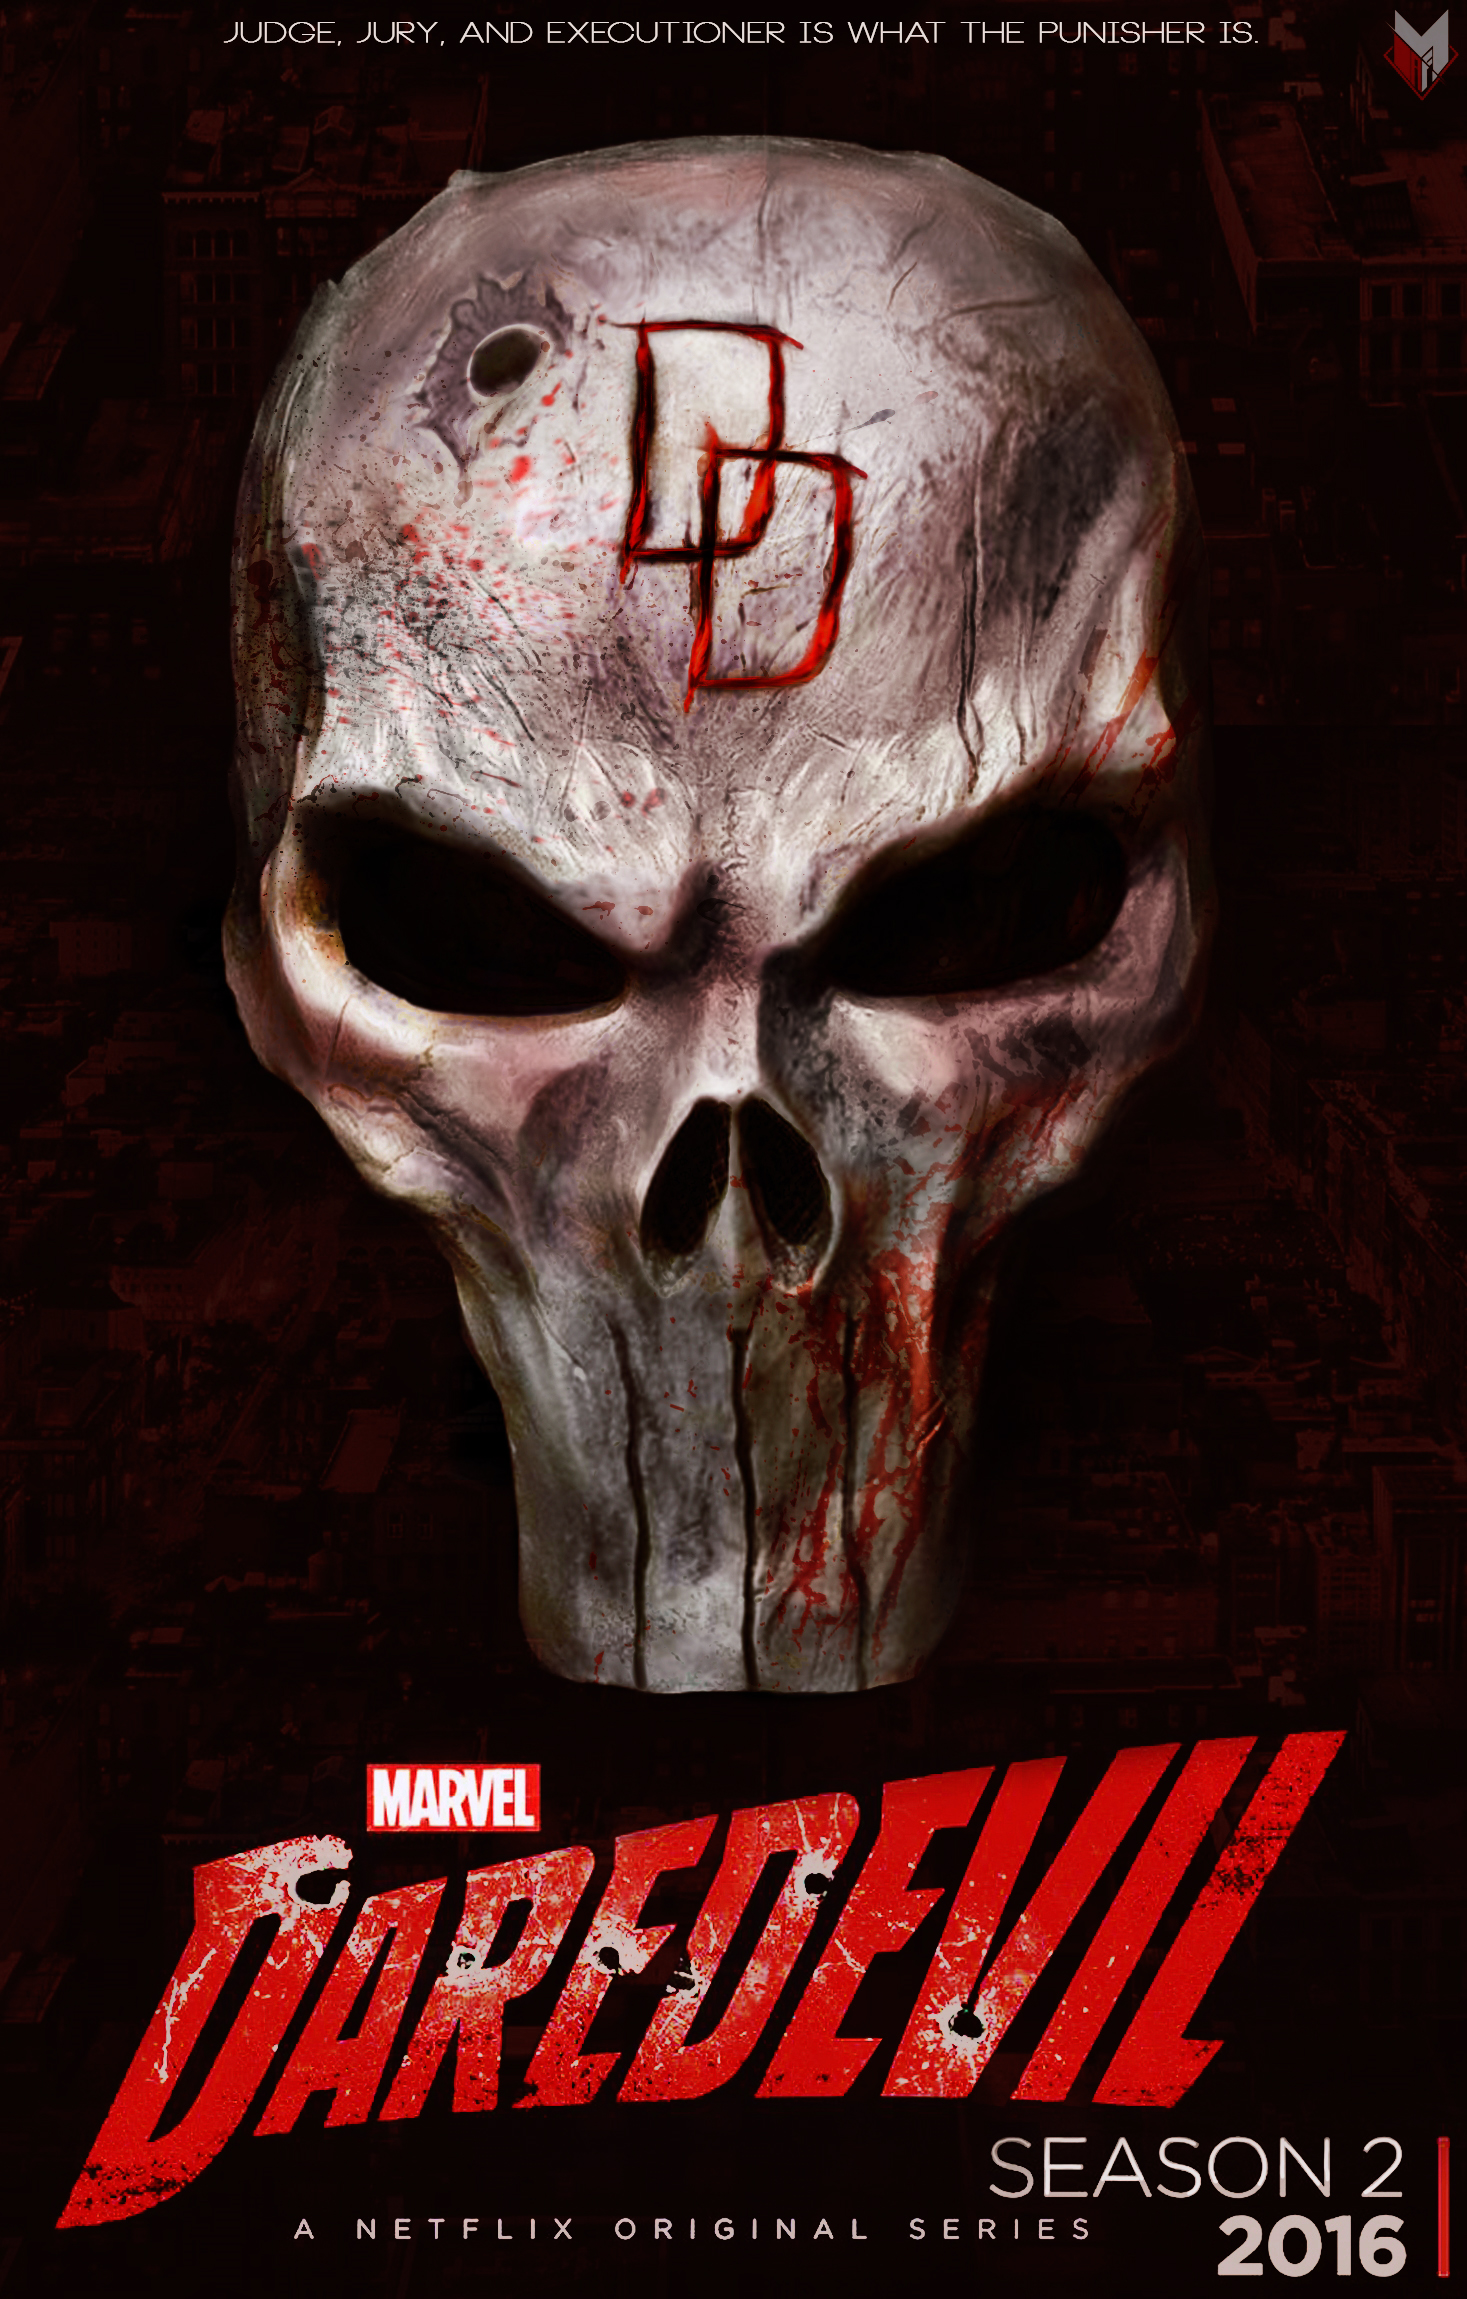 daredevil_season_2_poster__by_spidermonkey23-d8wxpjr.jpg